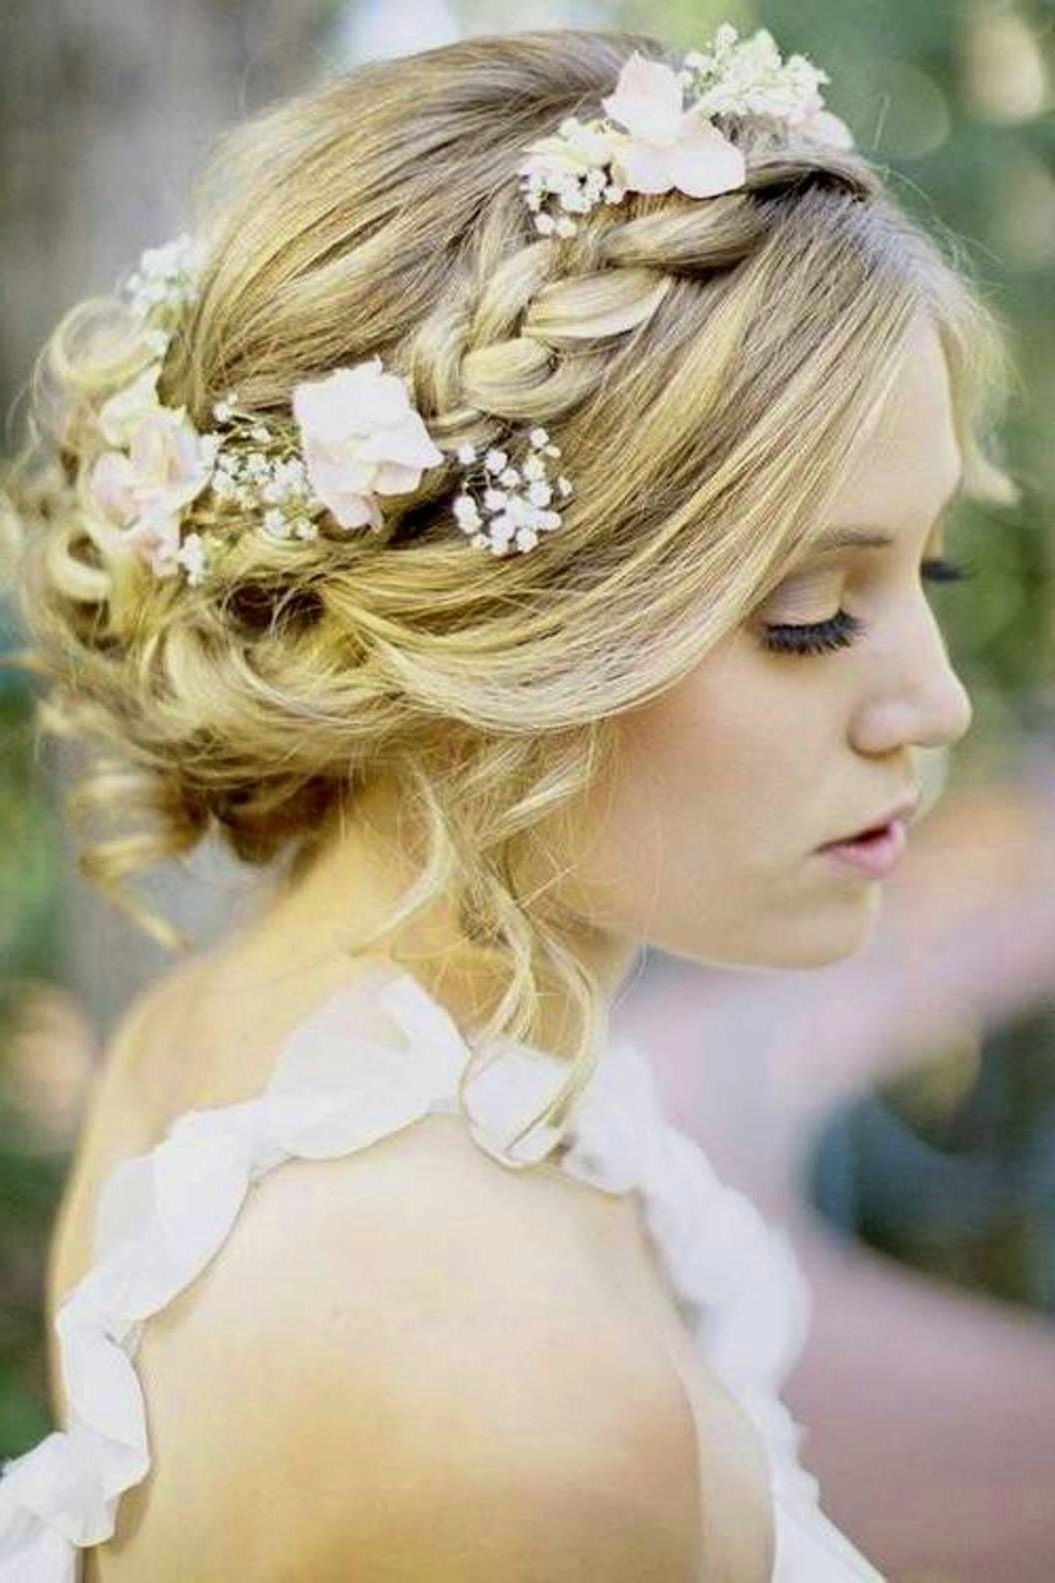 Cute Wedding Hairstyles 21 Gorgeous Half Up Down Babble Cute Wedding Throughout Most Popular Cute Wedding Guest Hairstyles For Short Hair (View 11 of 15)